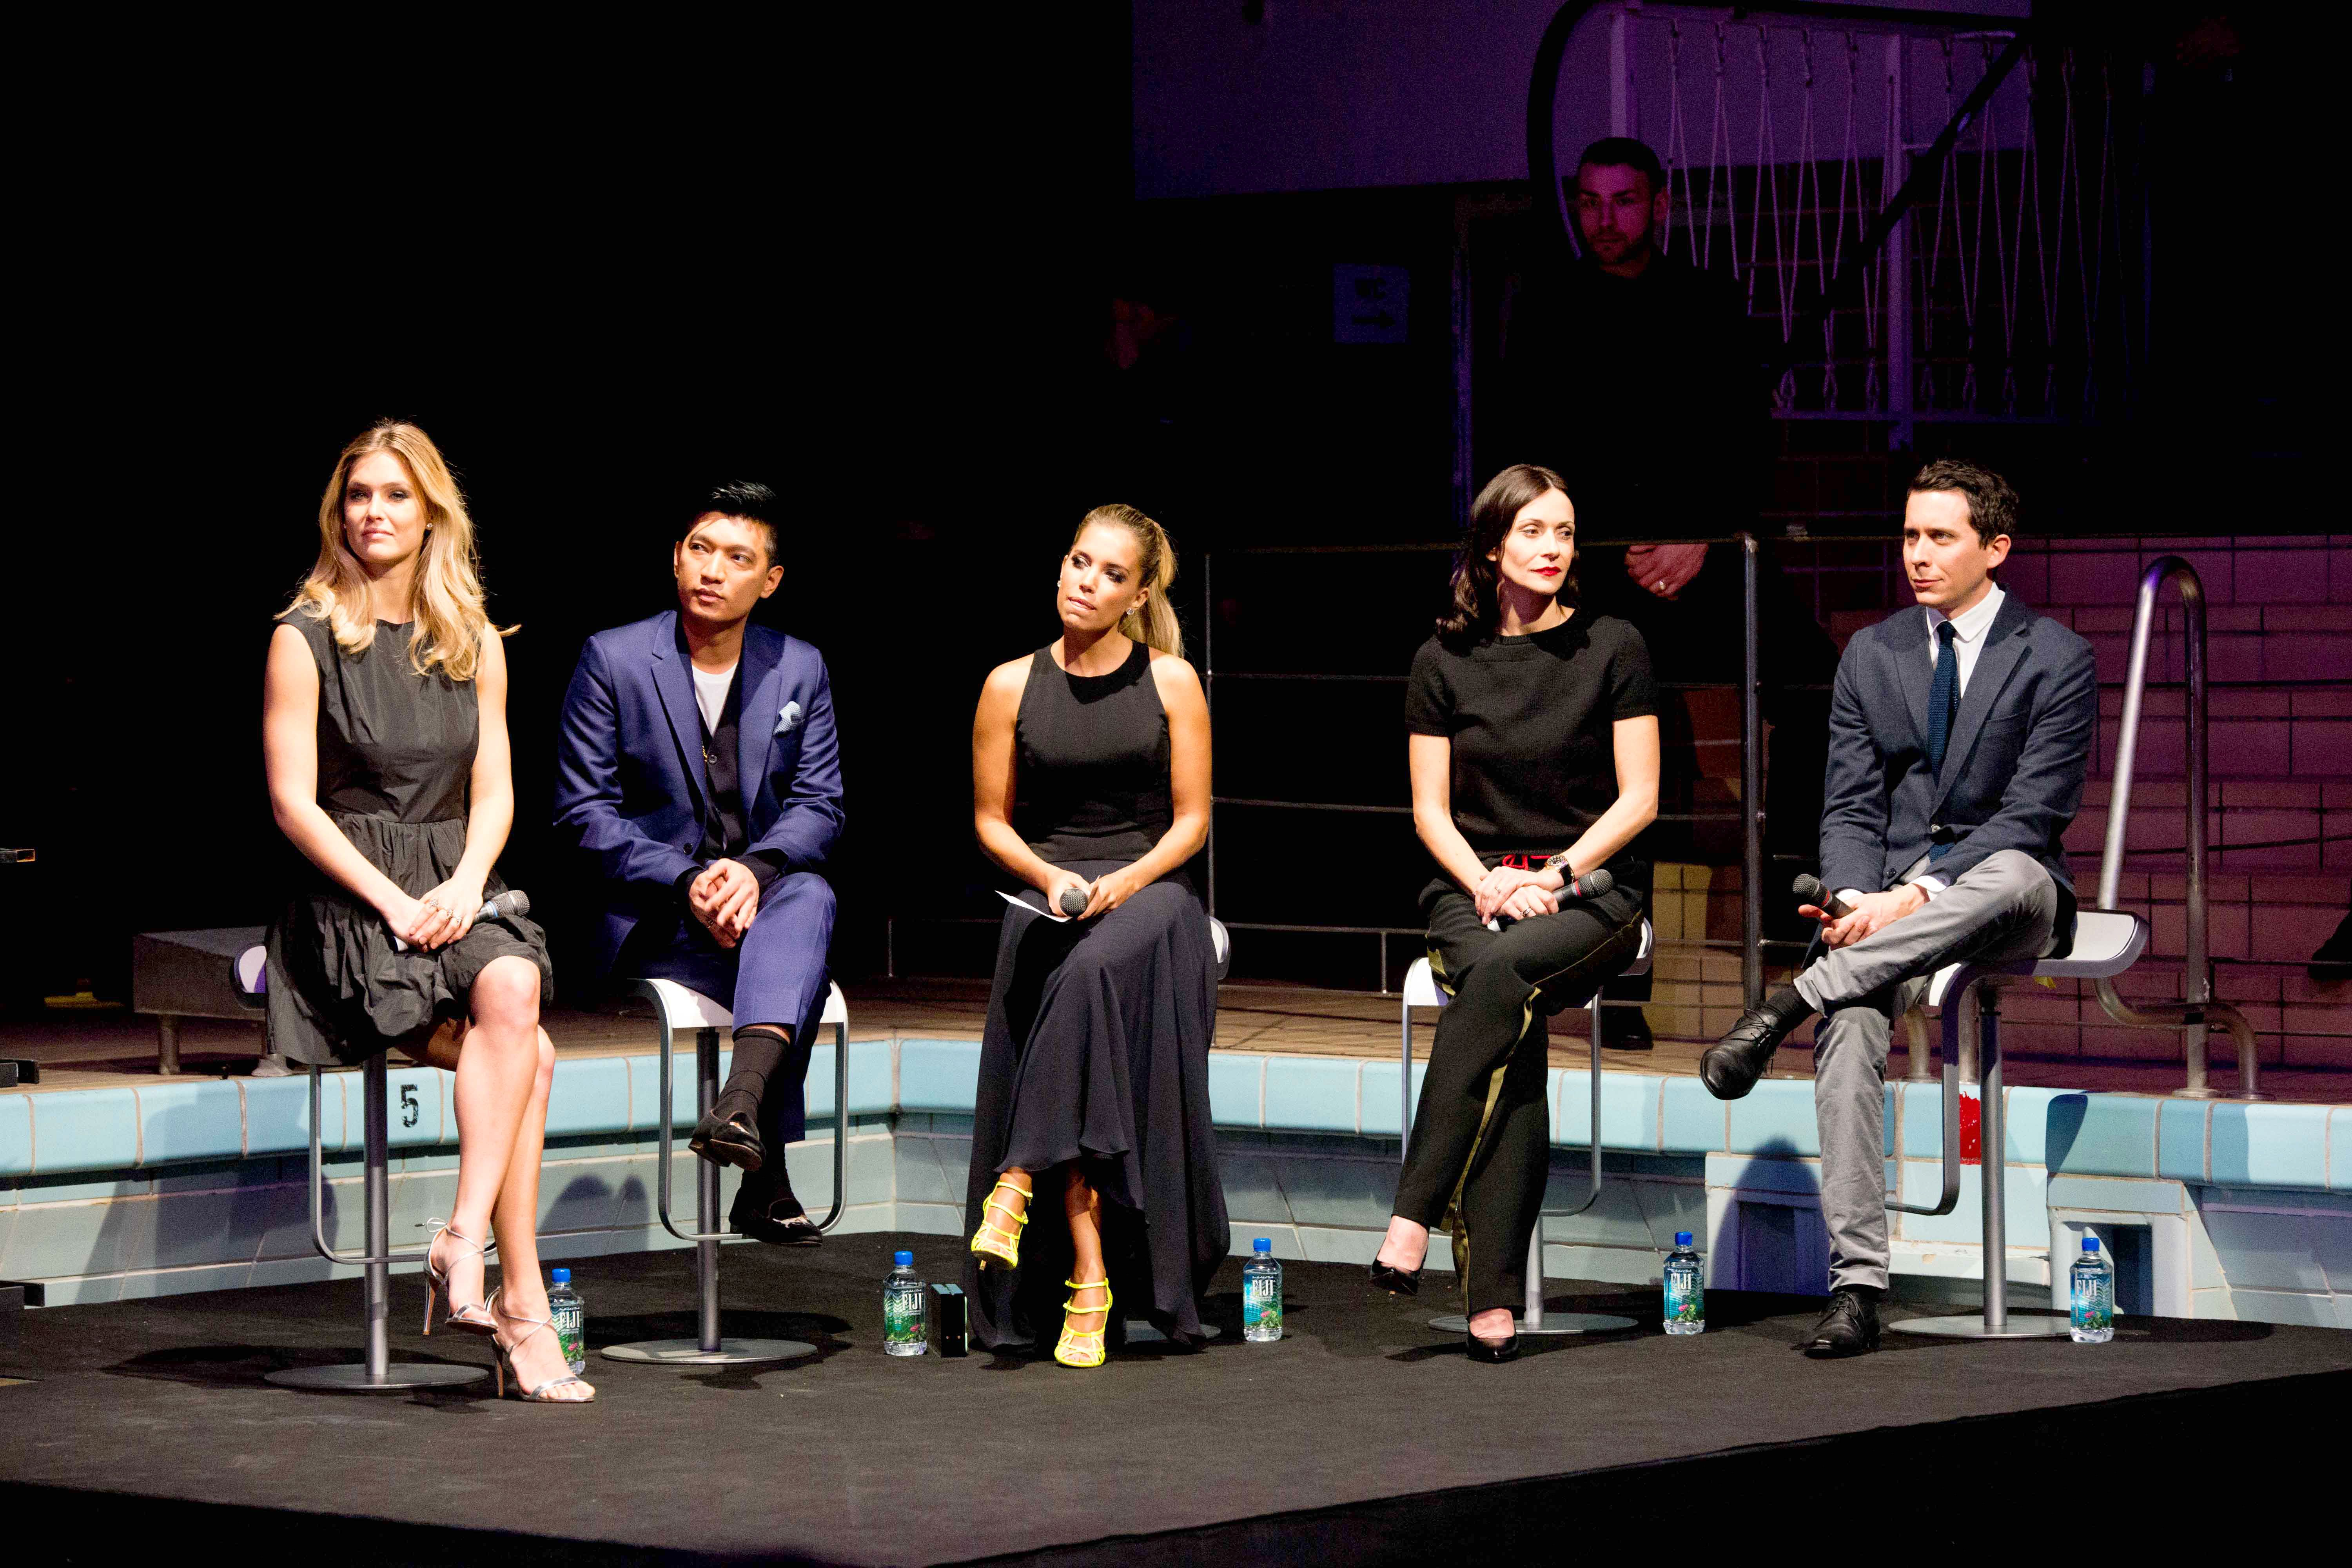 Stylight Fashion Influencer Awards 2015 in Berlin